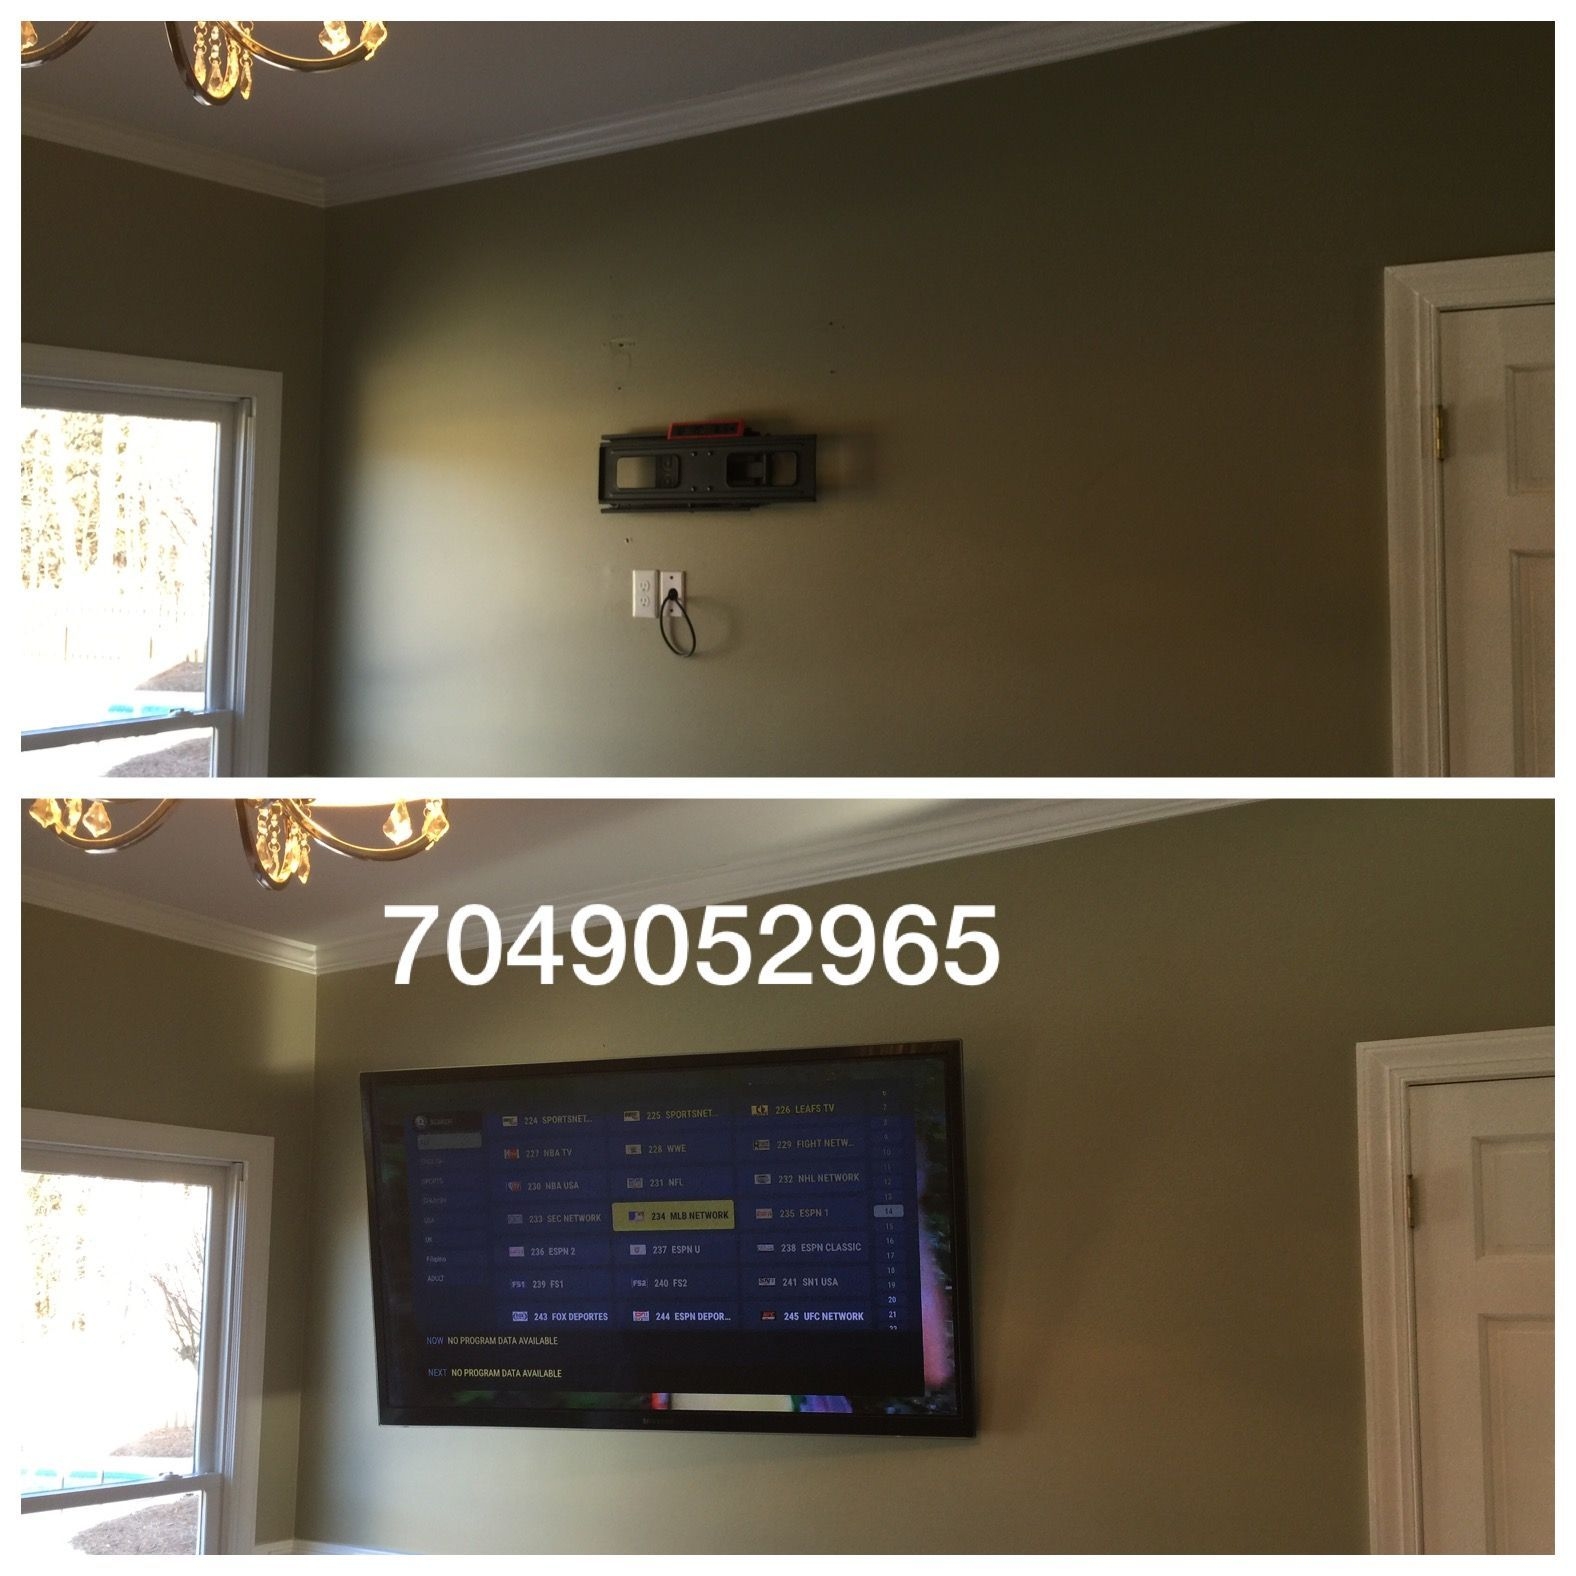 Full service home theater and home wiring services. We are expanding our  residential and commercial wiring services to include outdoor security  lighting and ...